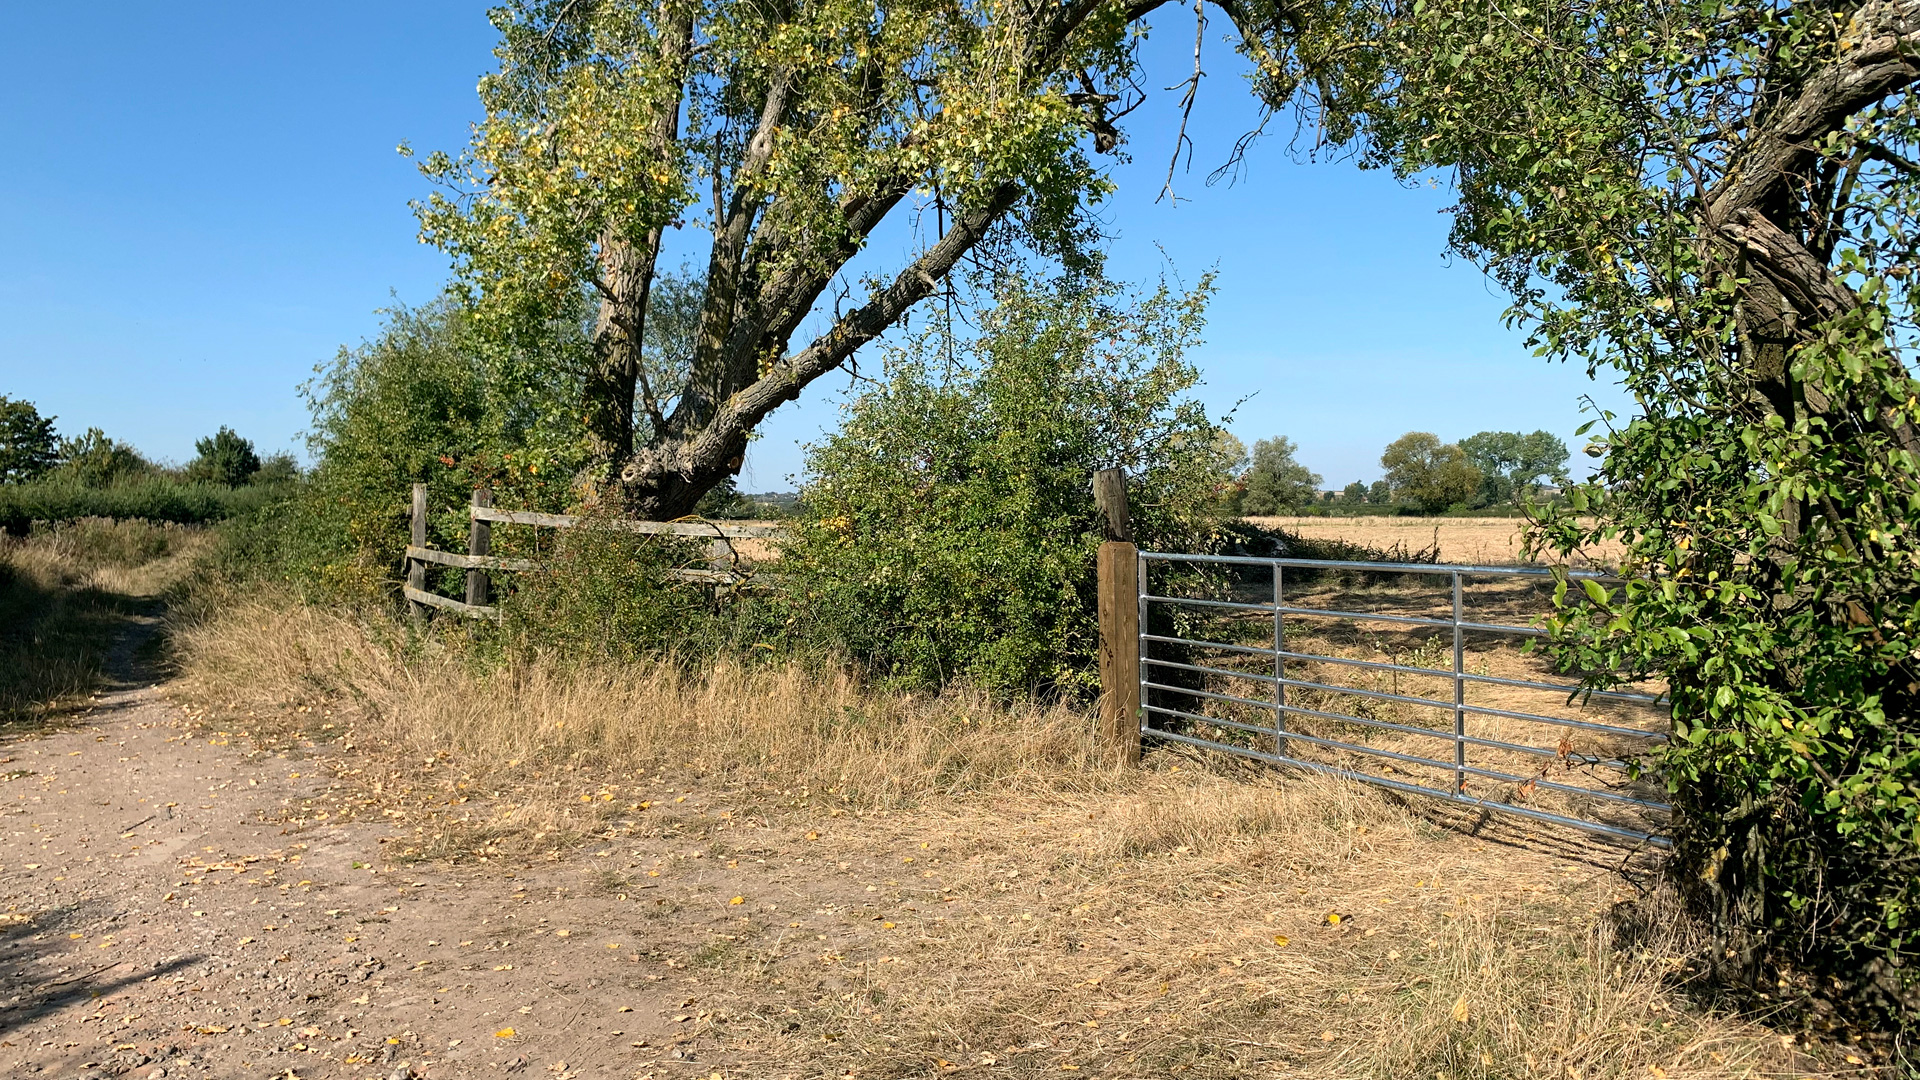 Land for sale at Draytonmead Farm access to Lots 1 & 2